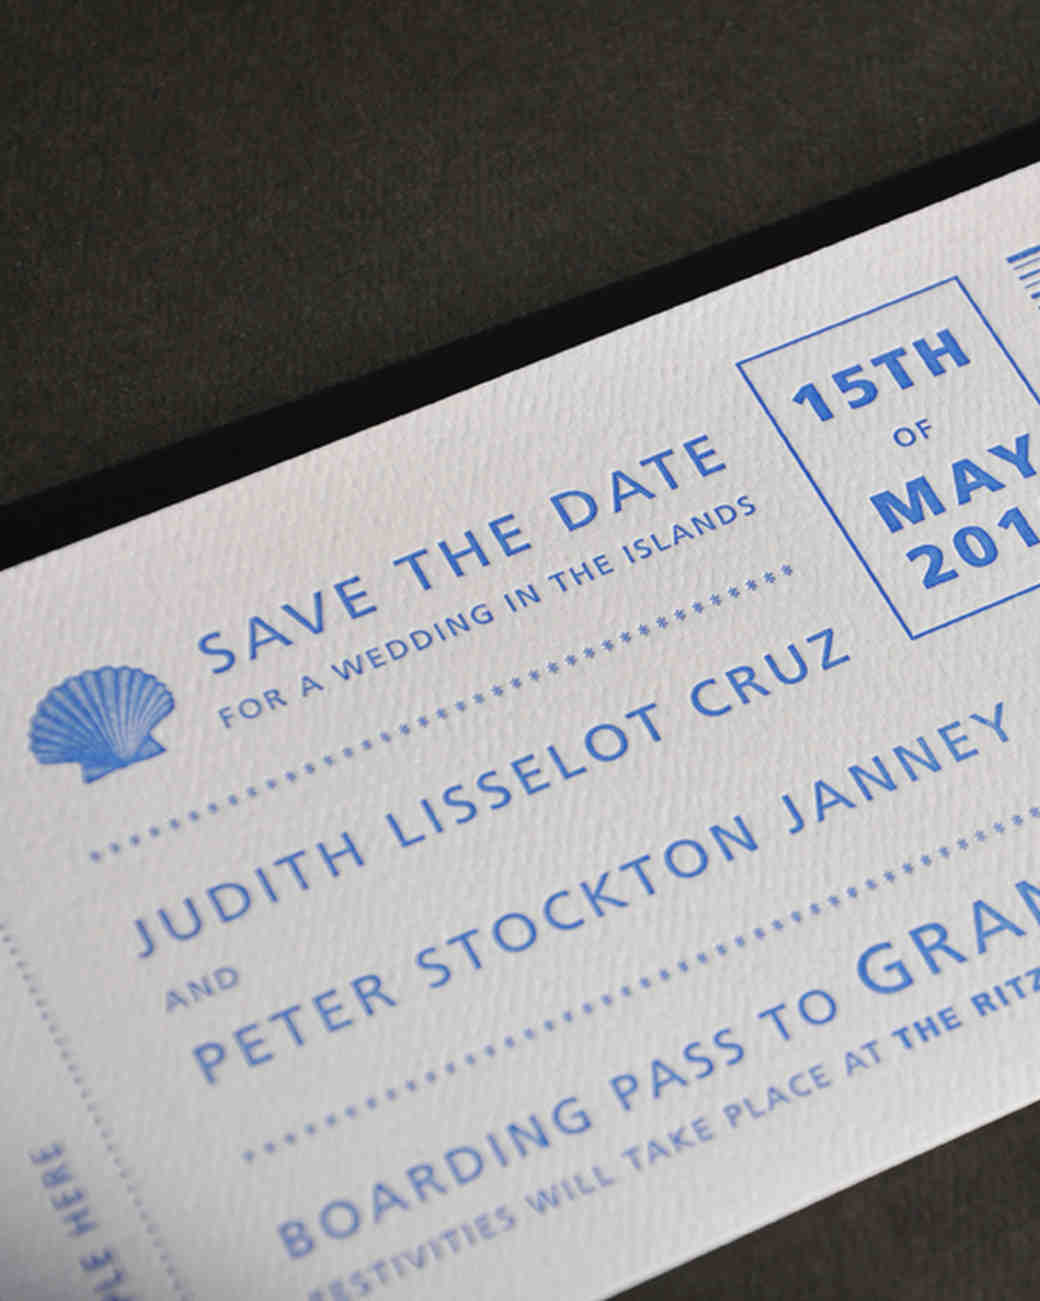 32 Destination Wedding SavetheDates – Diy Wedding Save the Date Ideas